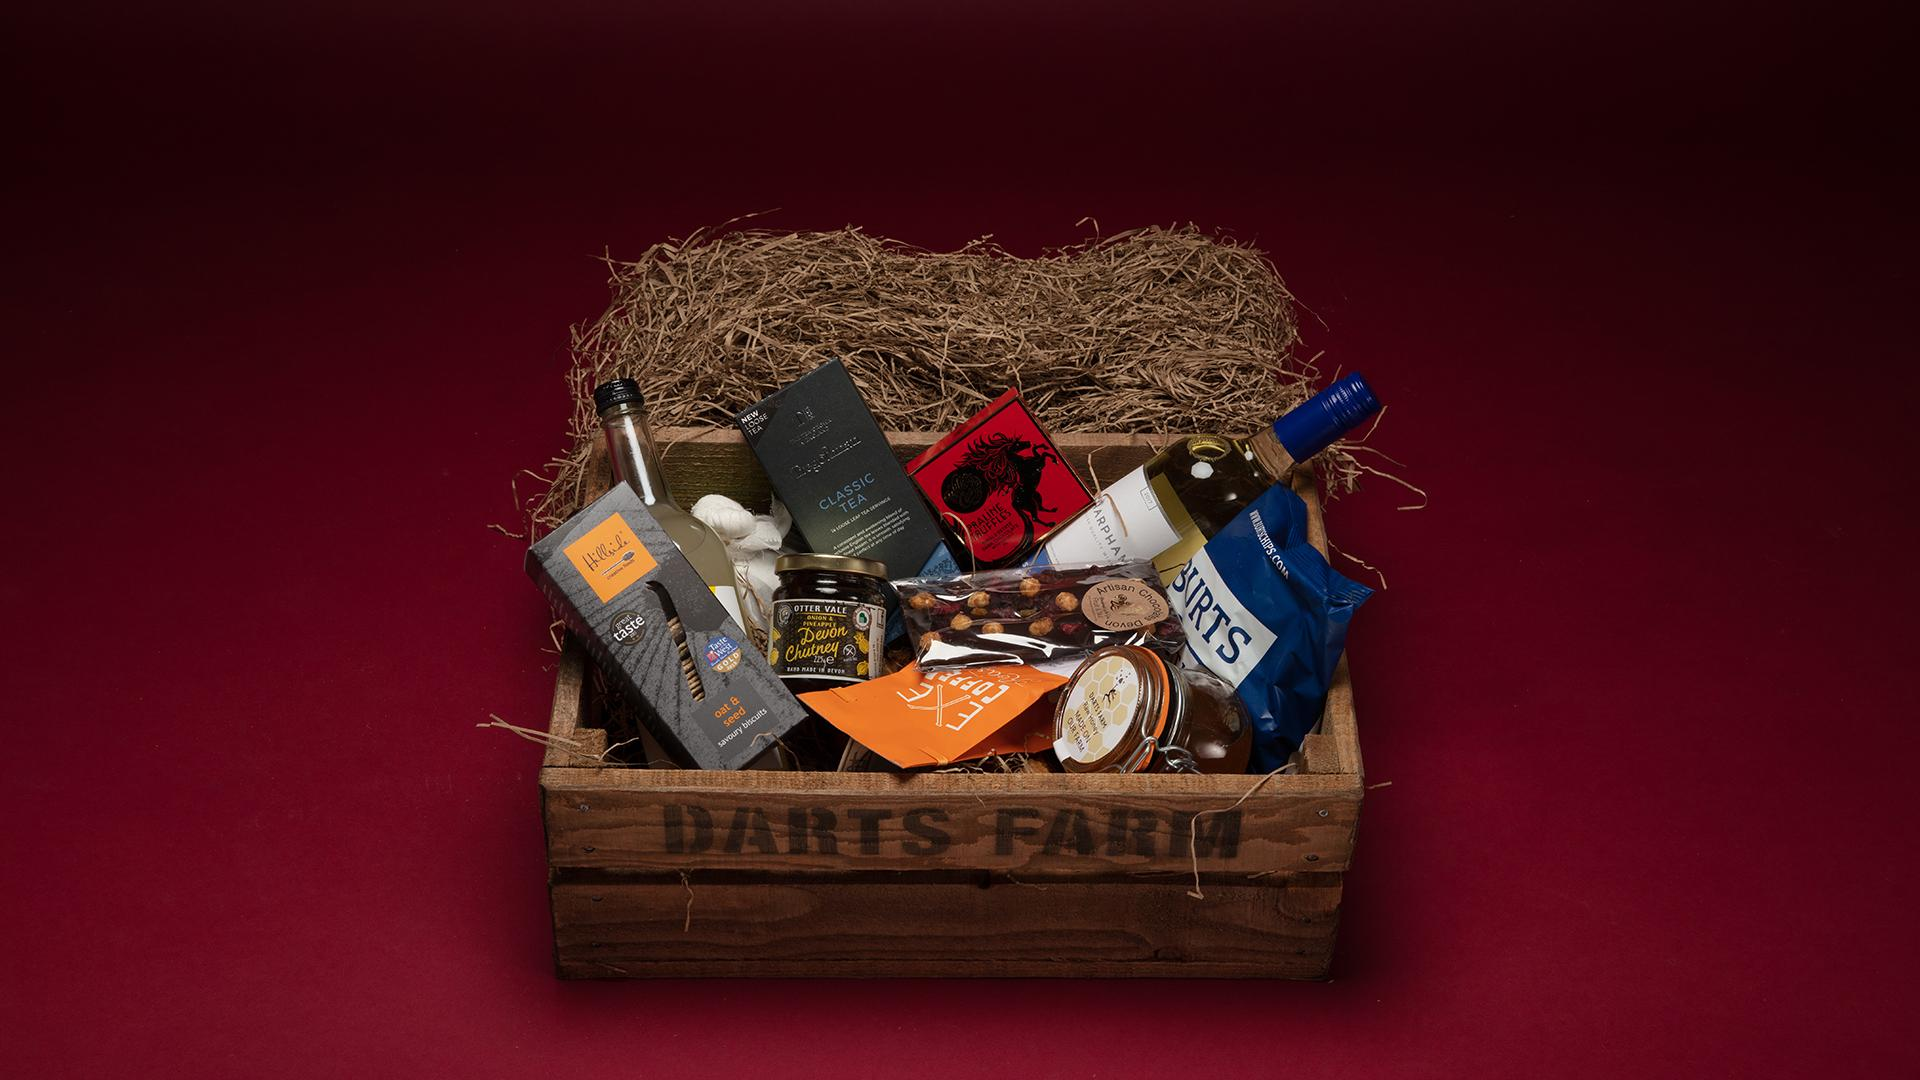 Christmas Hampers 2019: Darts Farm Luxury West Country Hamper, £99